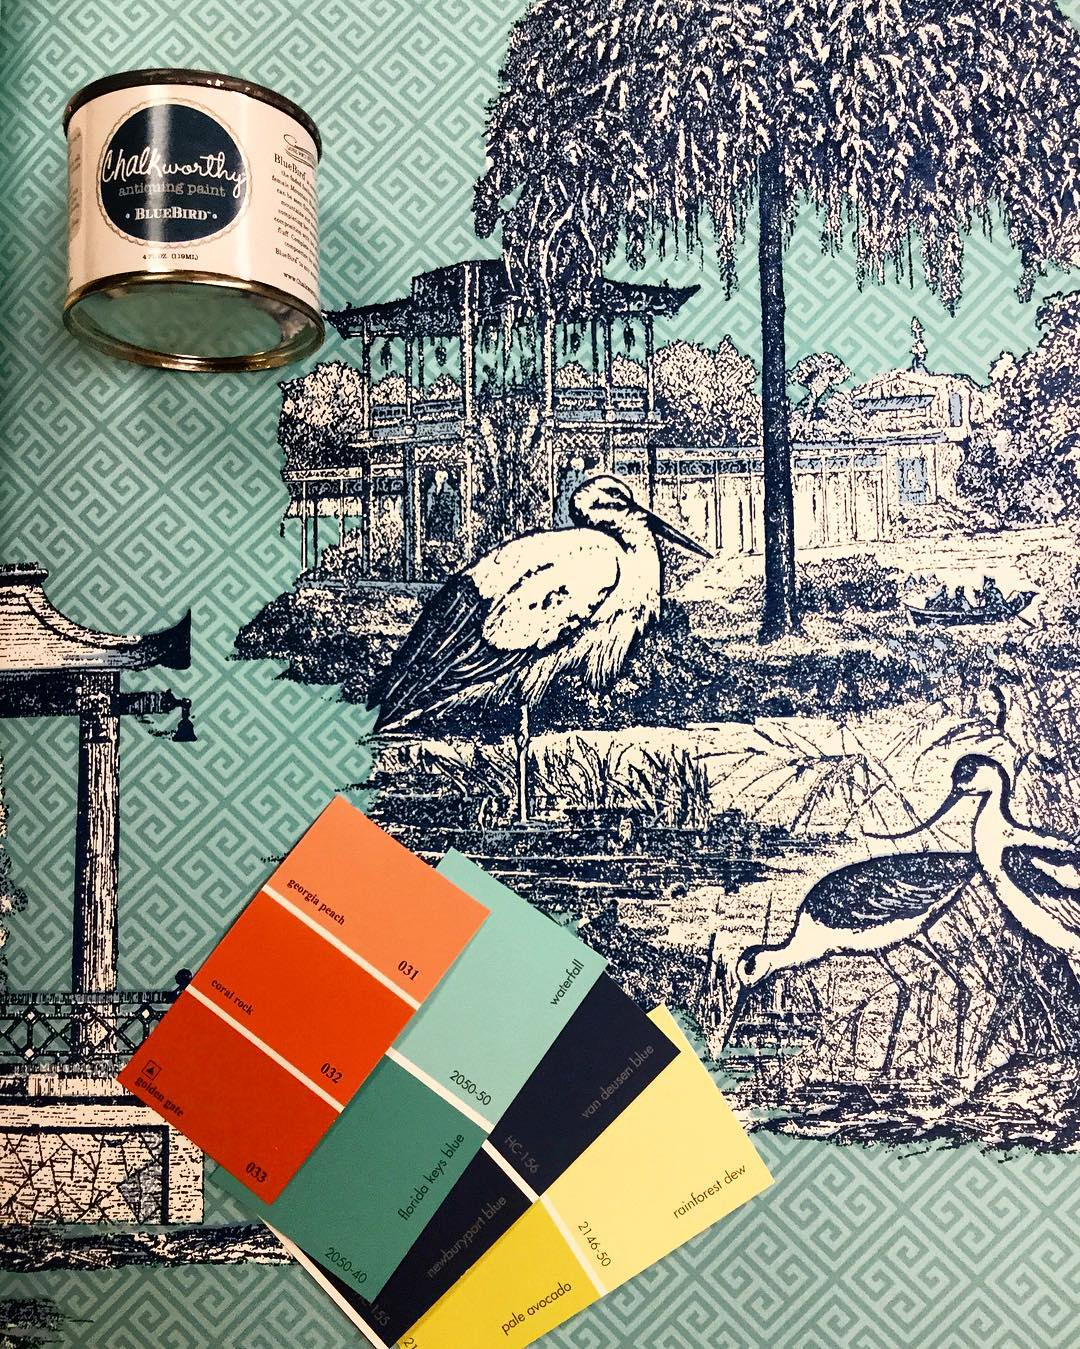 Buhrmester-Paint-on-Instagram-%E2%80%9CBirds-of-a-feather-flock-together-in-this-Asian-inspired-setting-wallpaper-wp424290-1